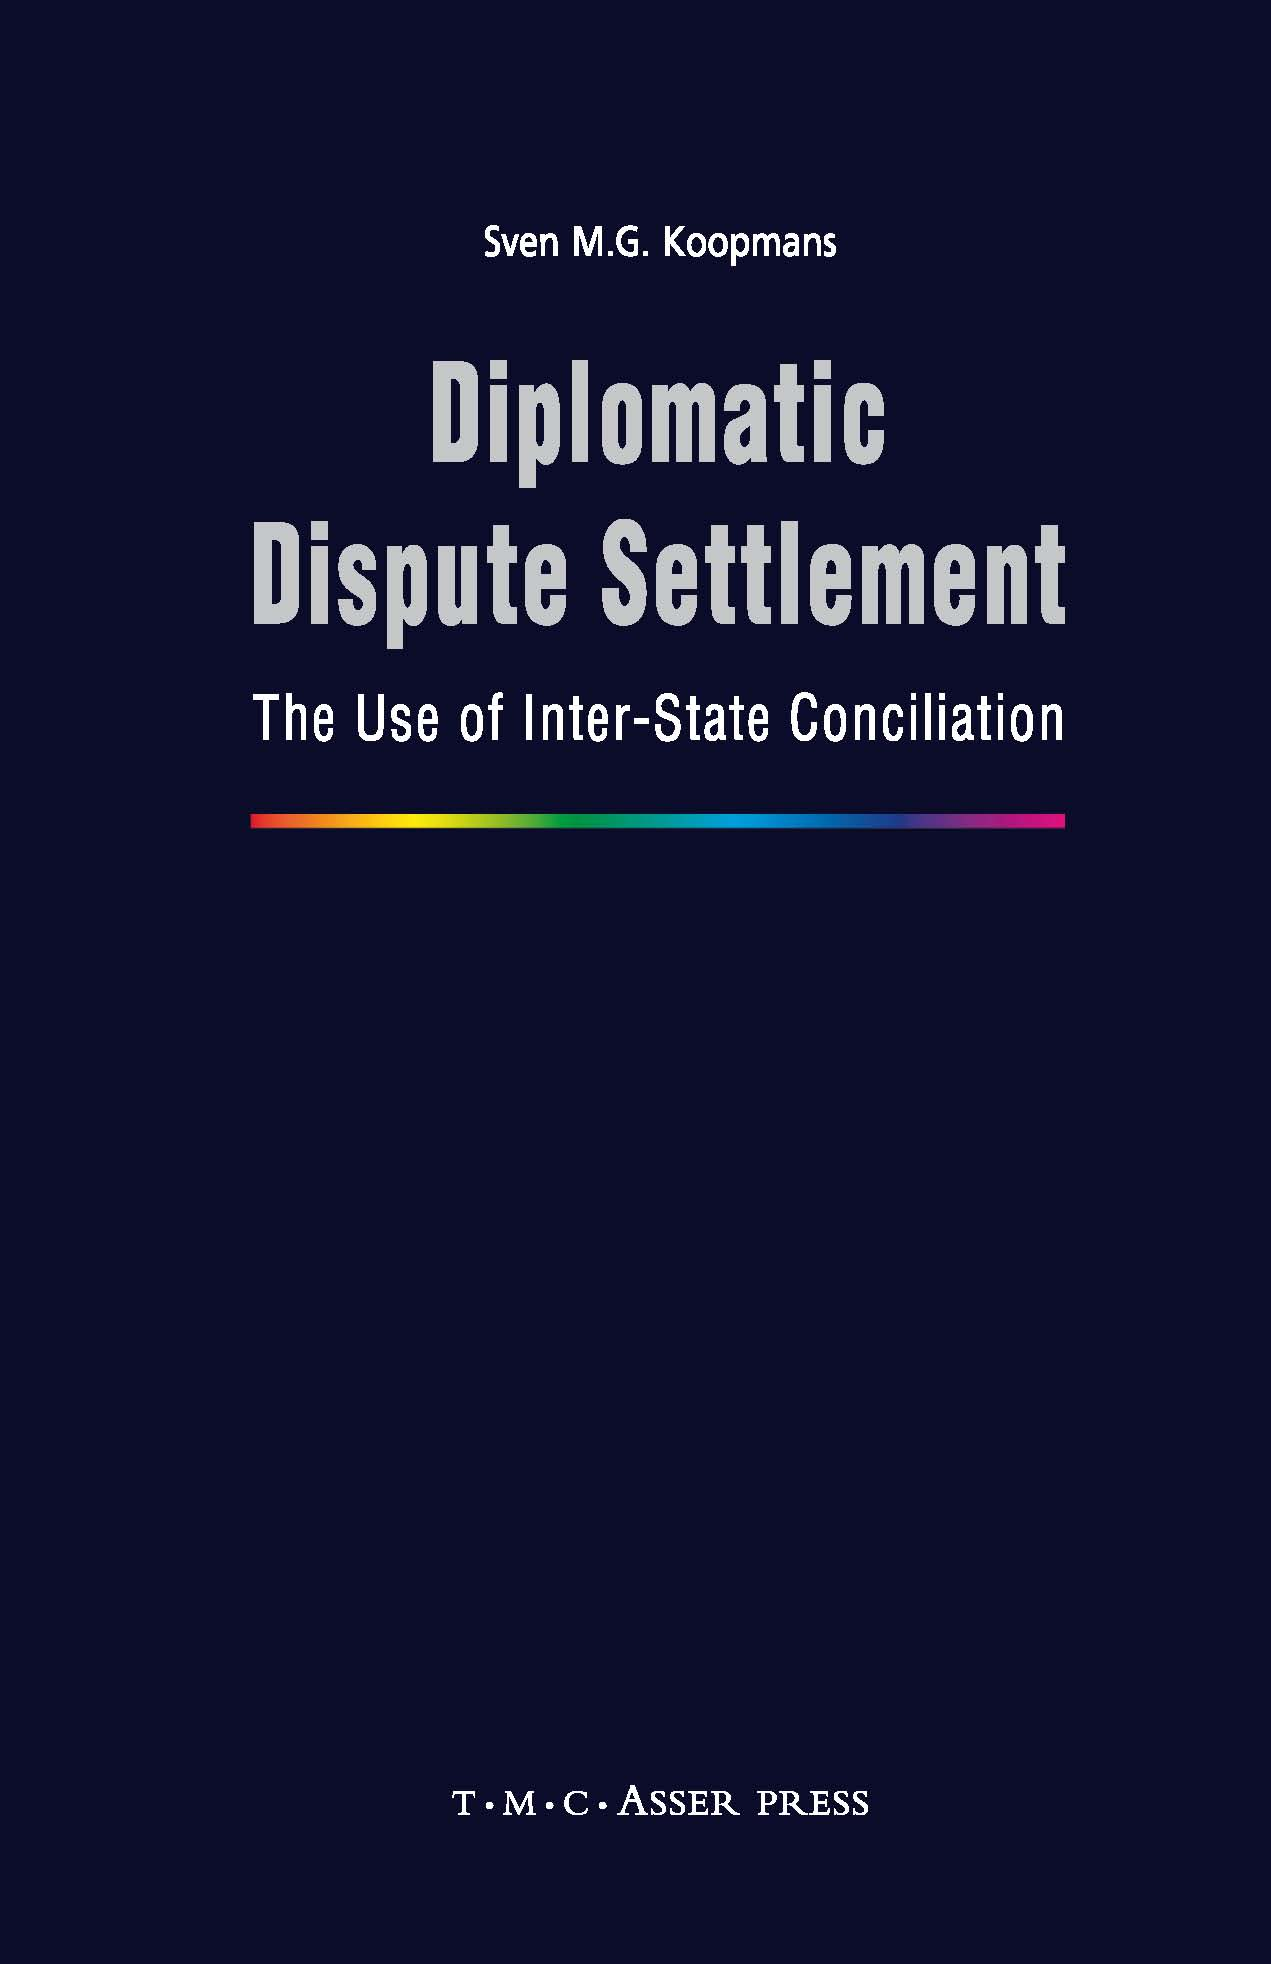 Diplomatic Dispute Settlement - The Use of Inter-State Conciliation